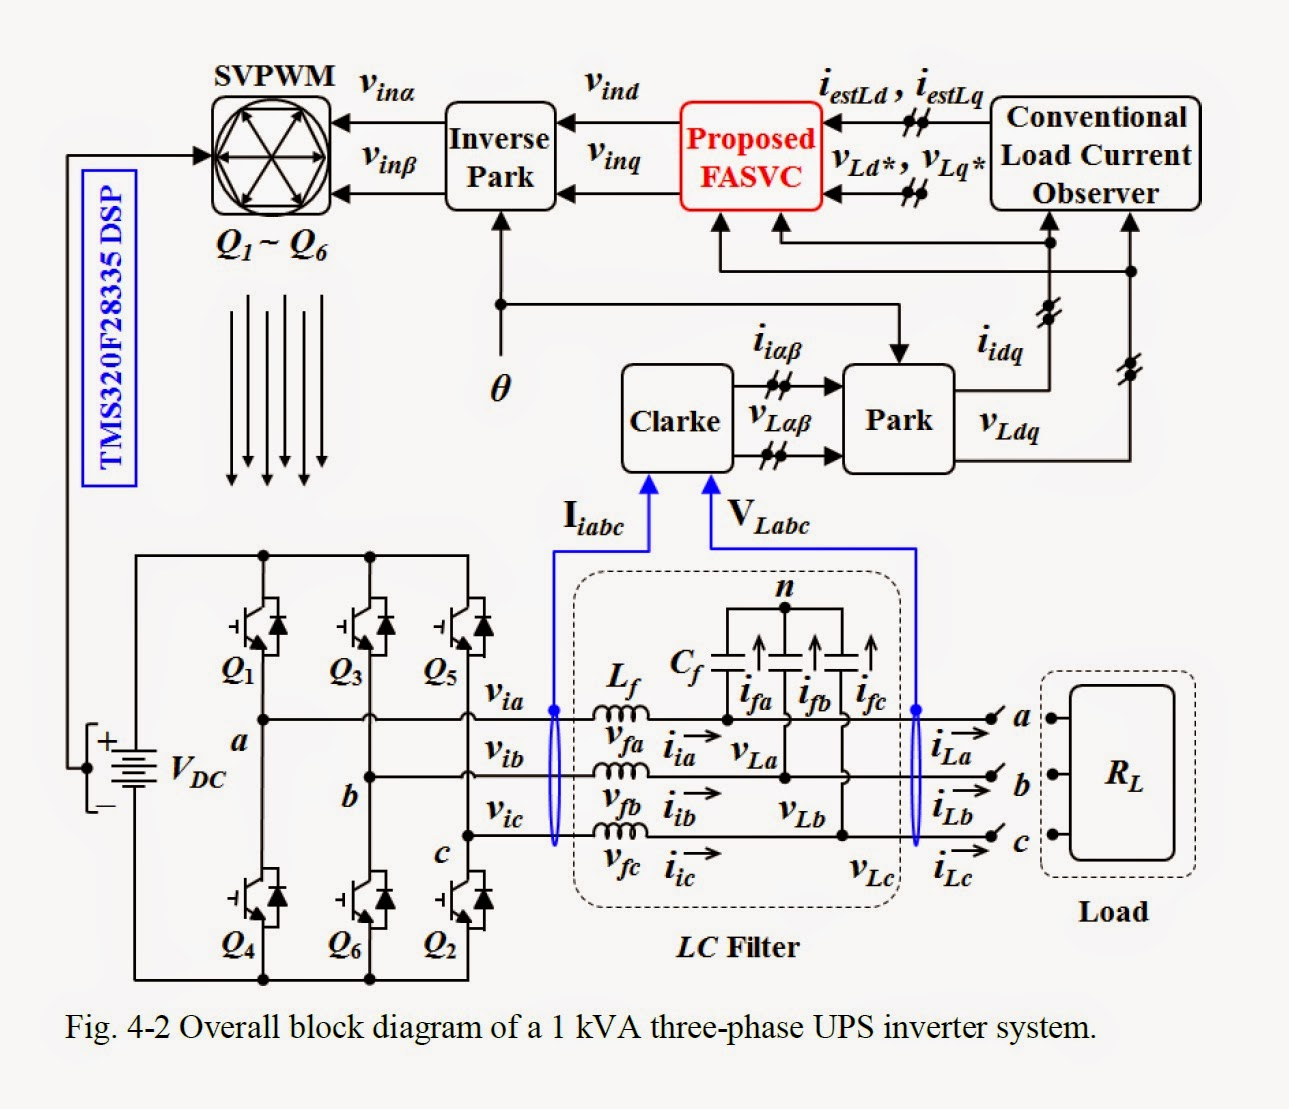 Power Electronics Electrnica De Potencia Leistungselektronik 3 Phase Ups Block Diagram Abstract Nowadays The Nonlinear Nature Of Electric Loads Leads To A Strong Demand High Quality And Reliable Source Both By Customers